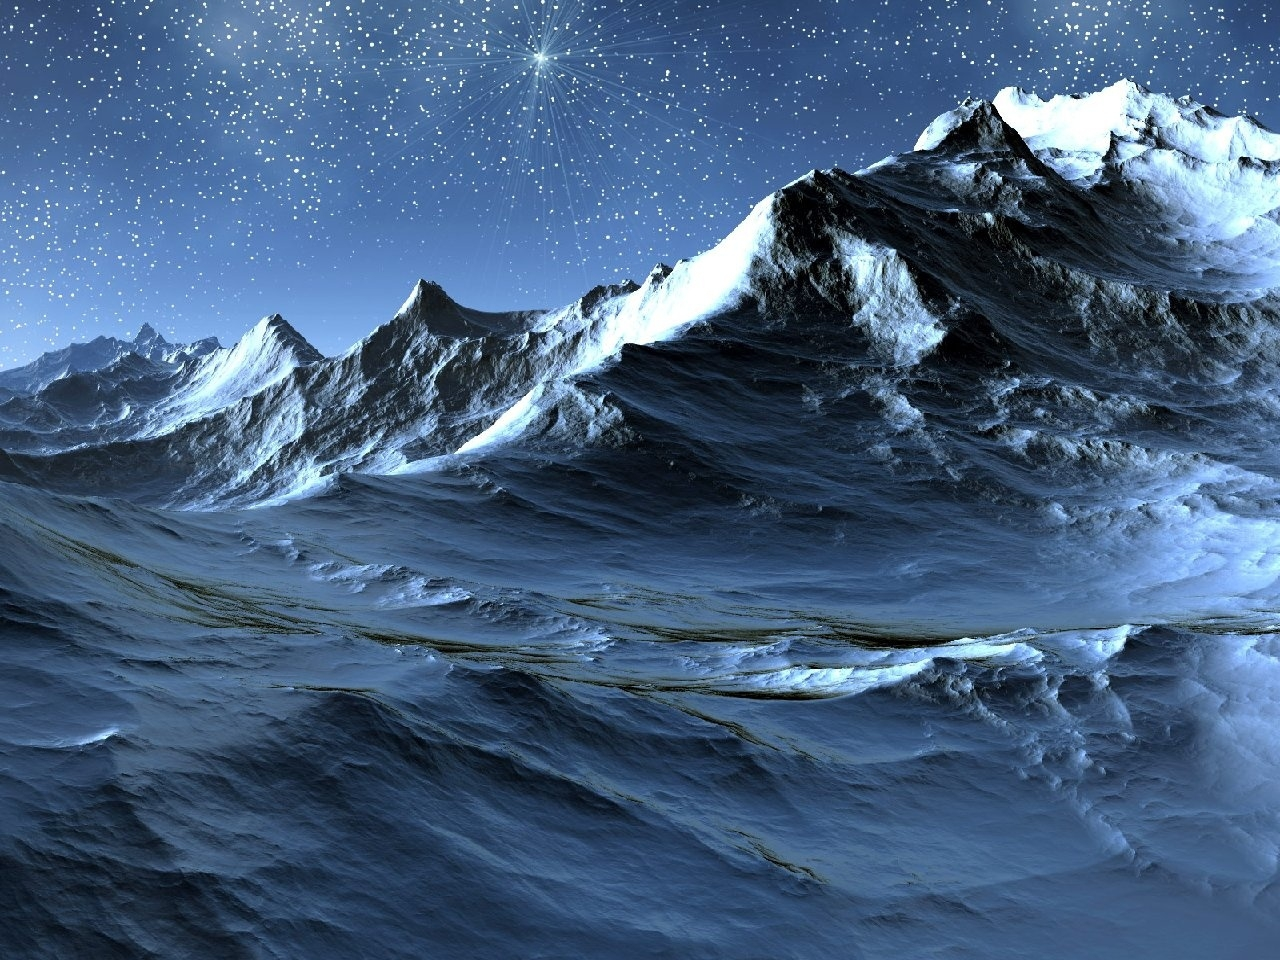 32457 download wallpaper Landscape, Mountains screensavers and pictures for free